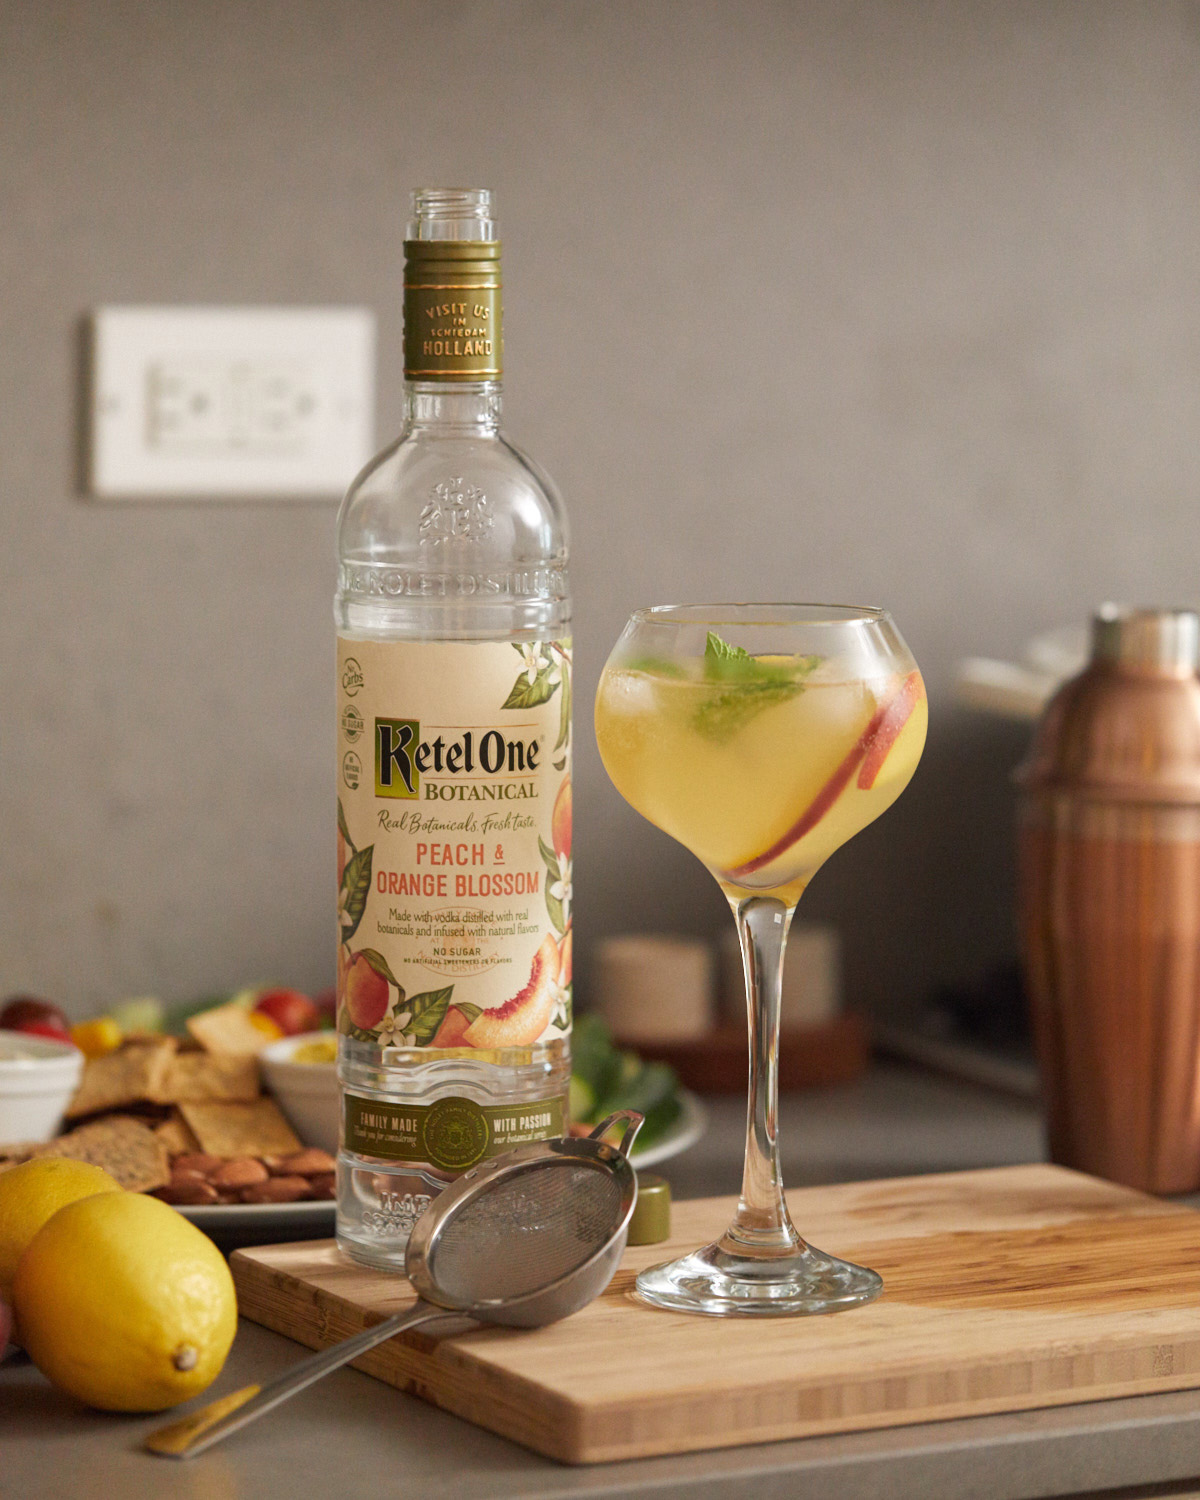 Ketel One Botanical Peachy Clean by Lily Kunin